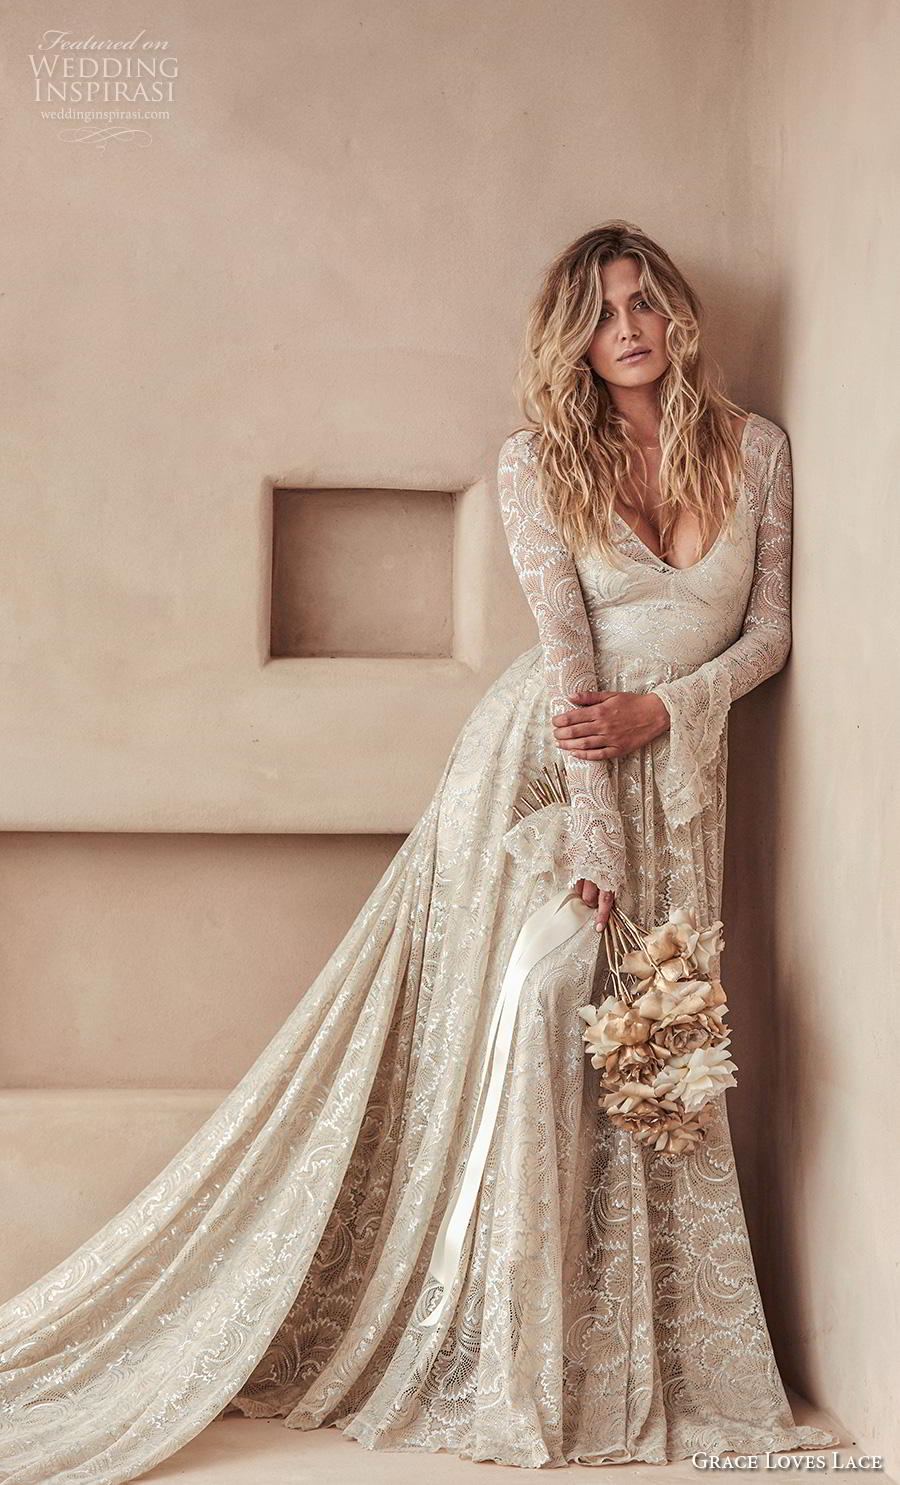 grace love lace 2020 bridal long poet sleeves deep v neck full embellishment elegant champagne color a  line wedding dress backless scoop back chapel train (3) mv